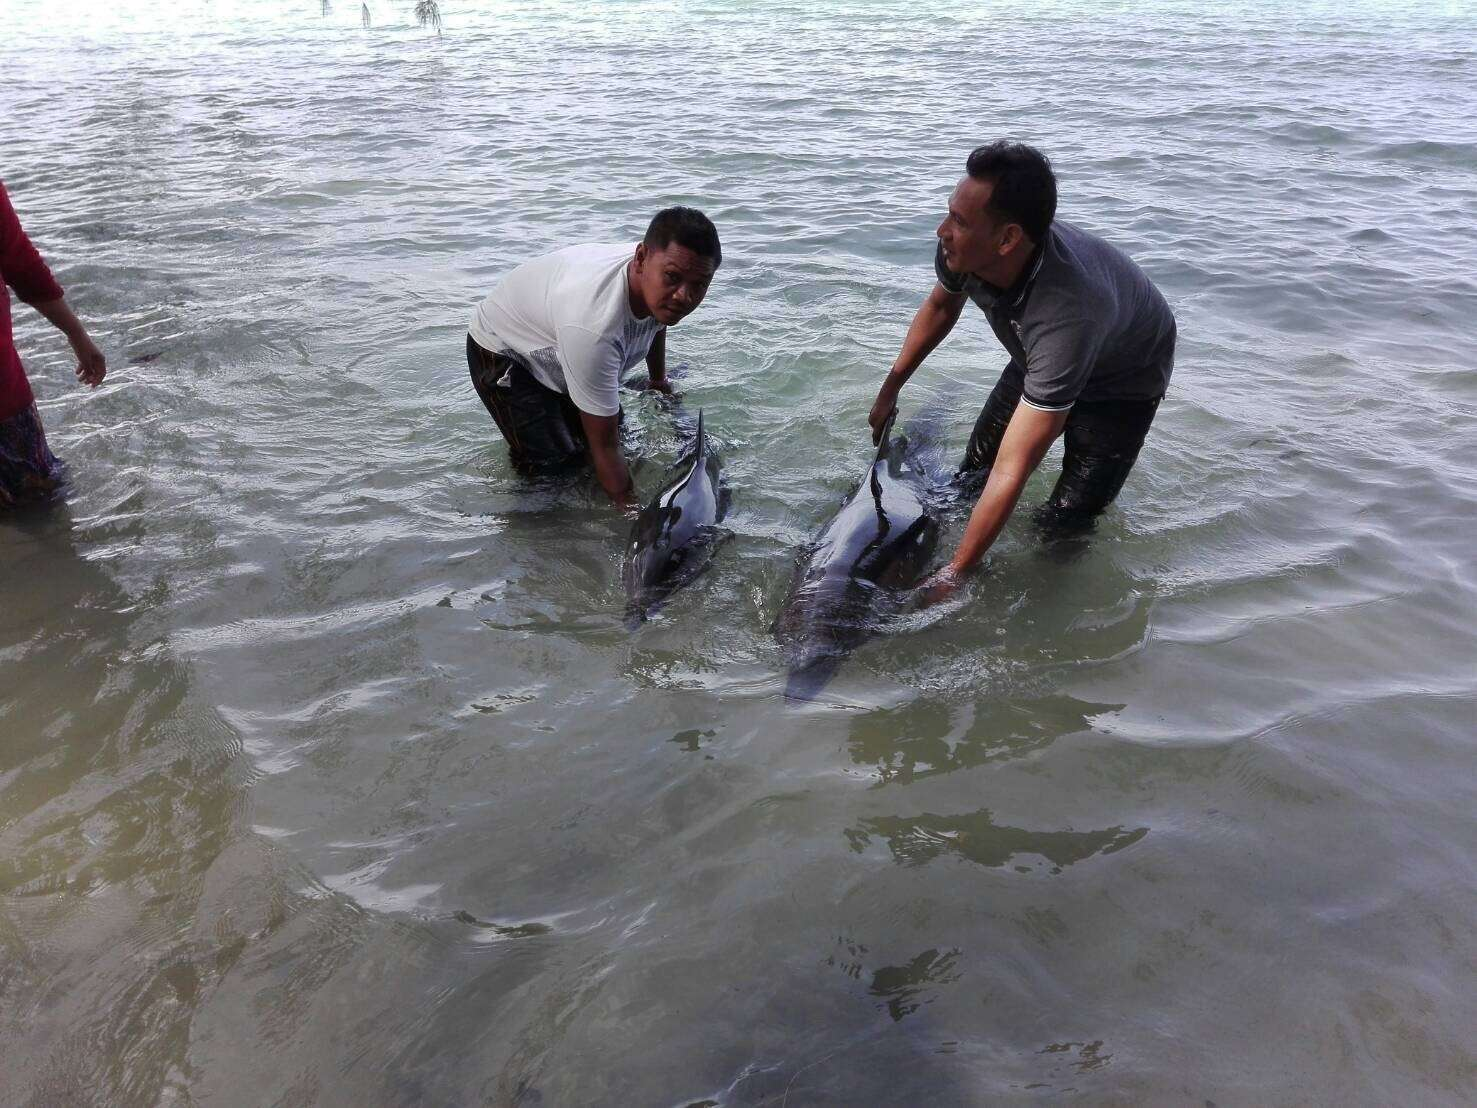 Mother and baby dolphin found off Phuket | The Thaiger